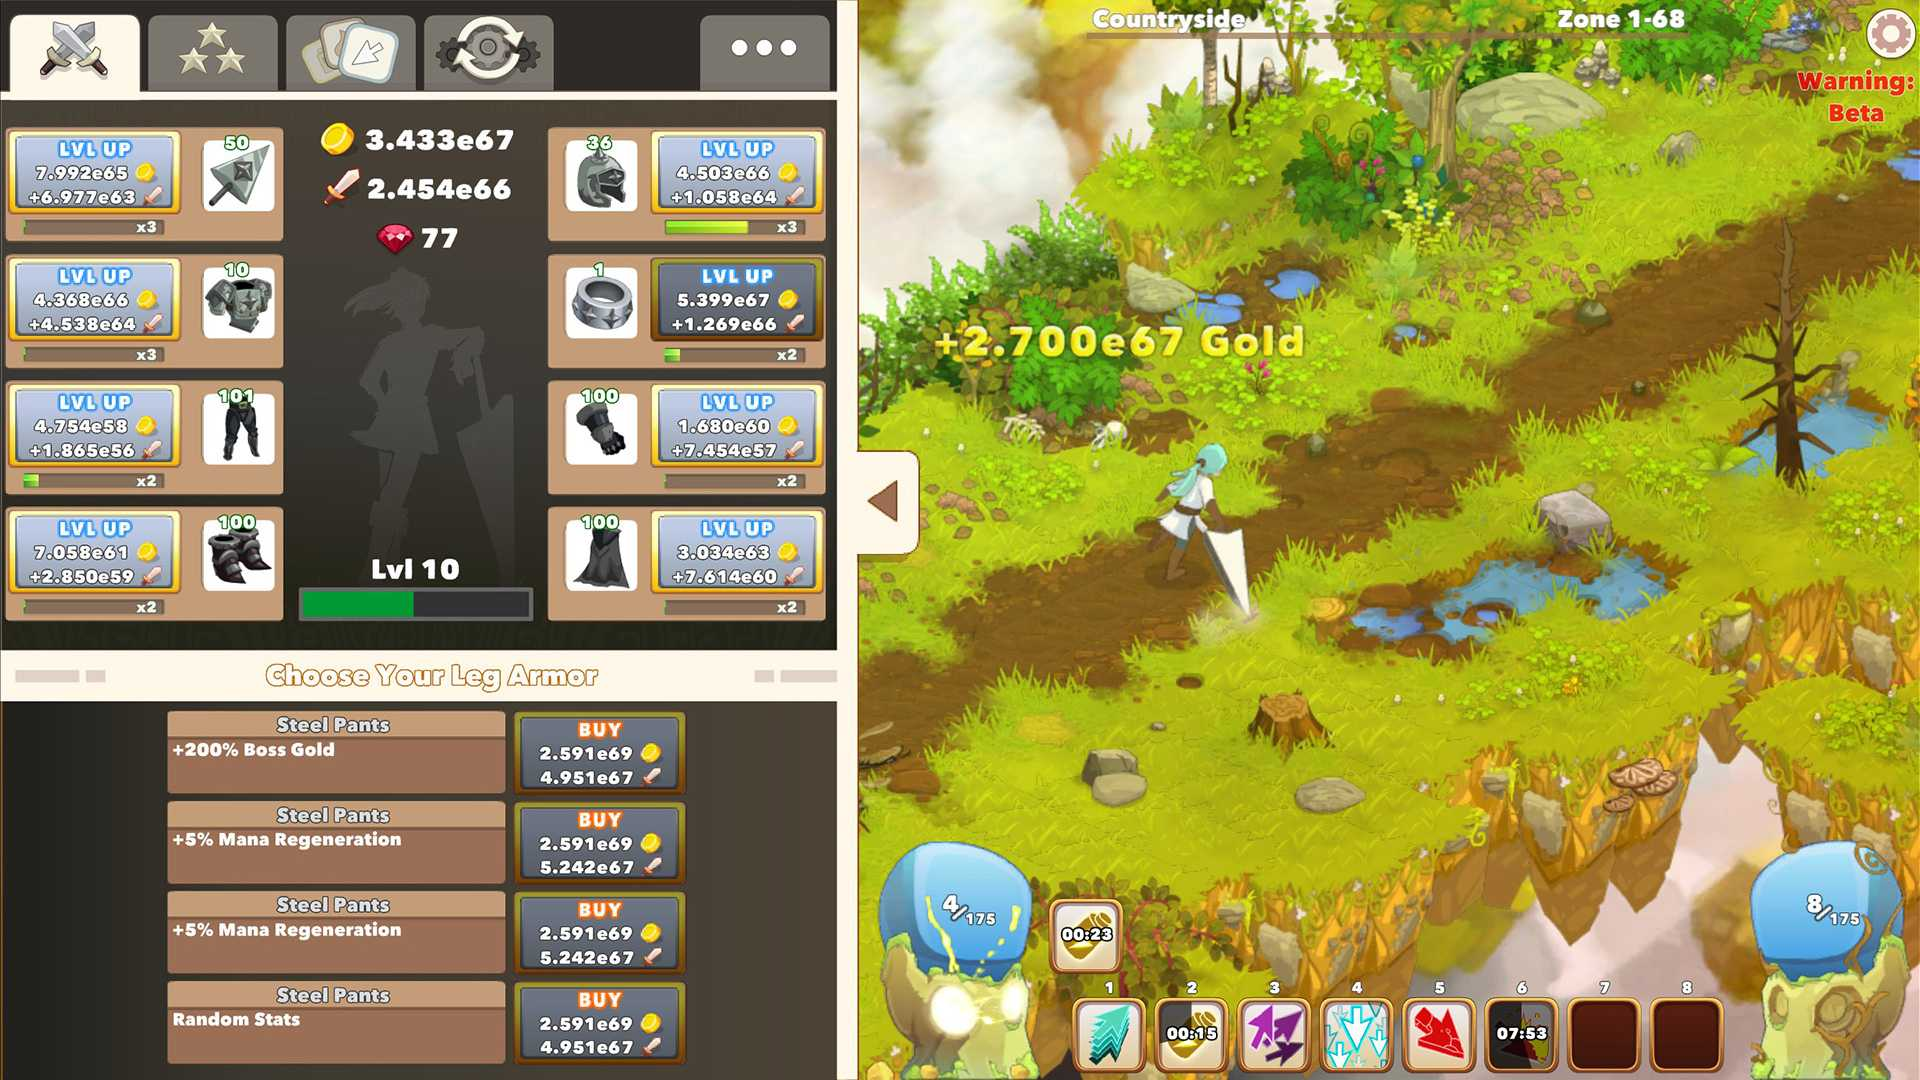 Clicker Heroes 2 wants to be so much more than a clicker game - and that's the problem